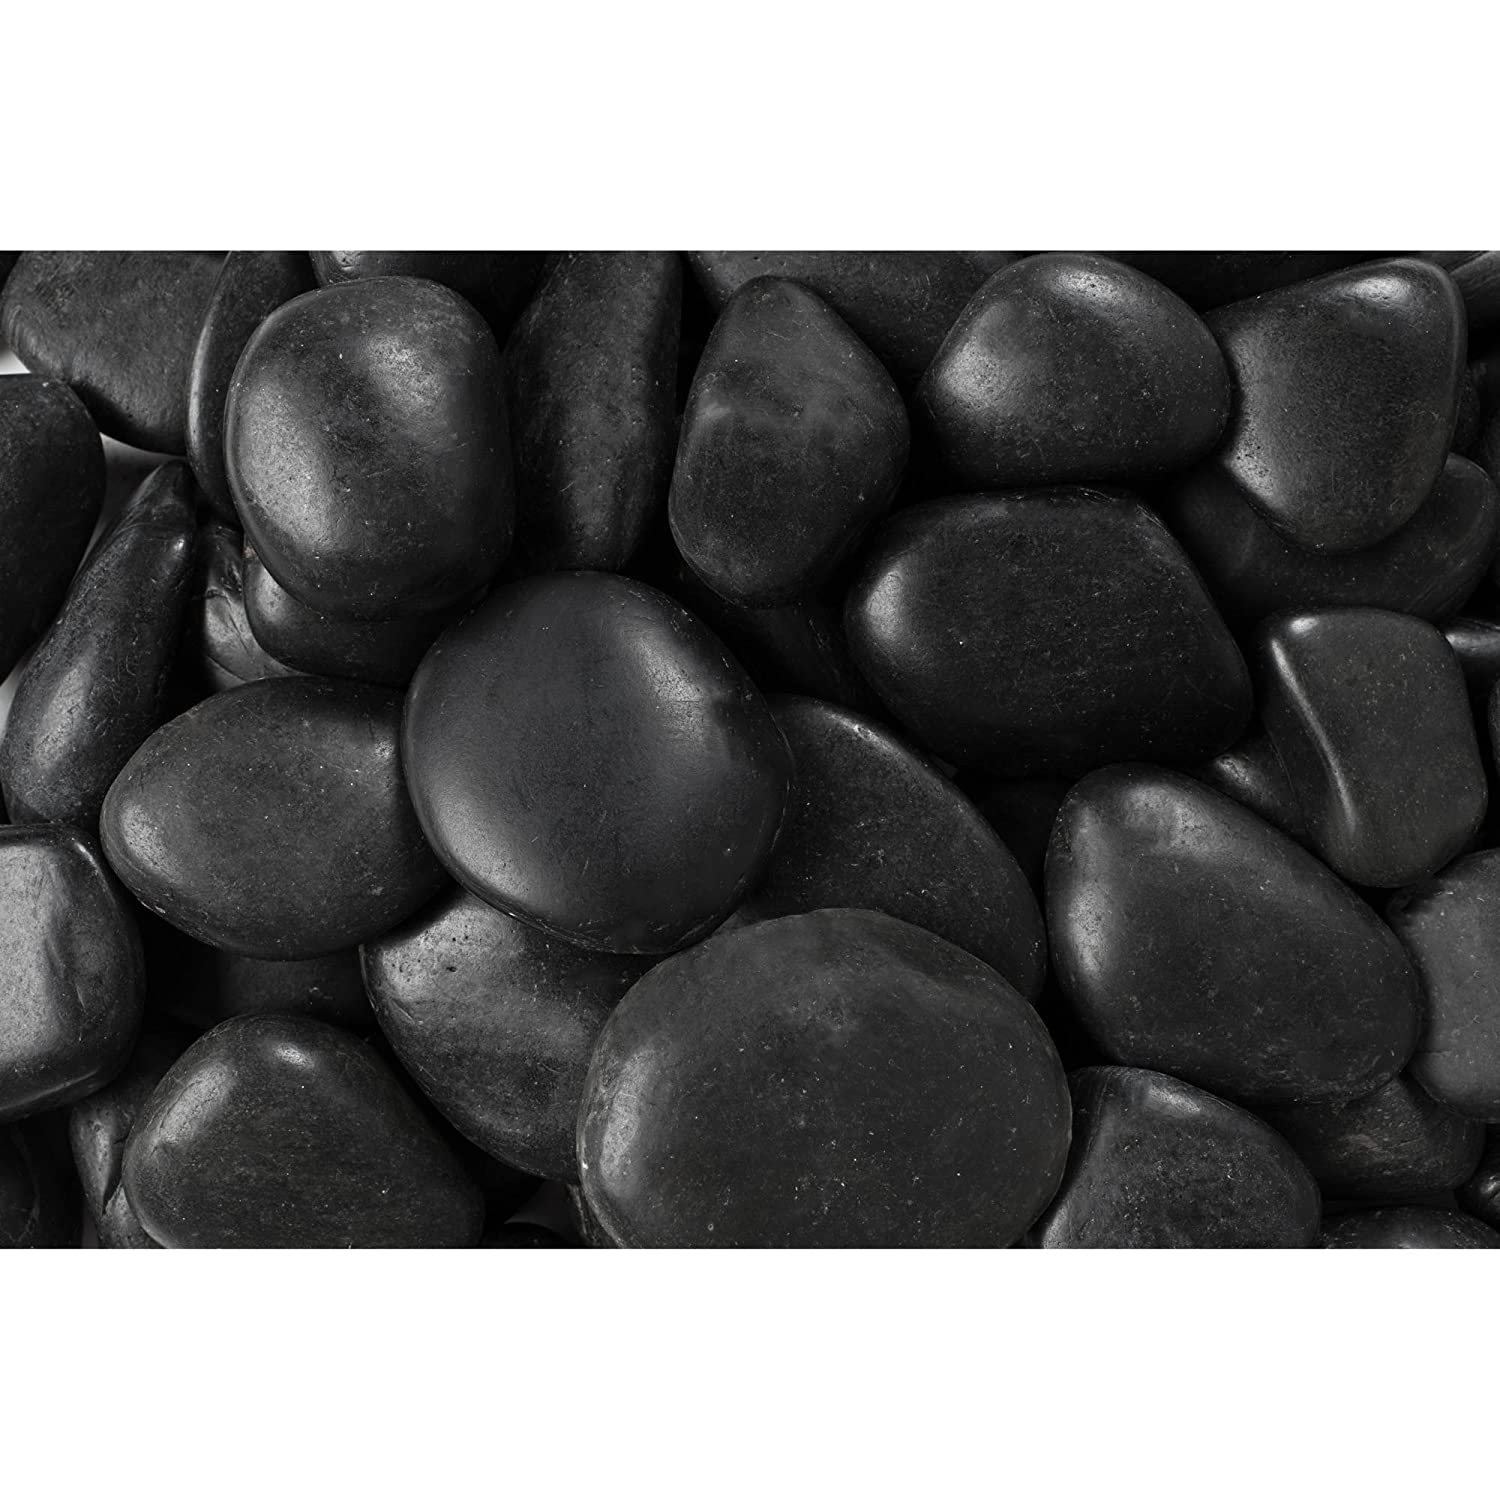 Rainforest RFBRPA3-20 Decorative Pebbles, 20 lb Grade A Black